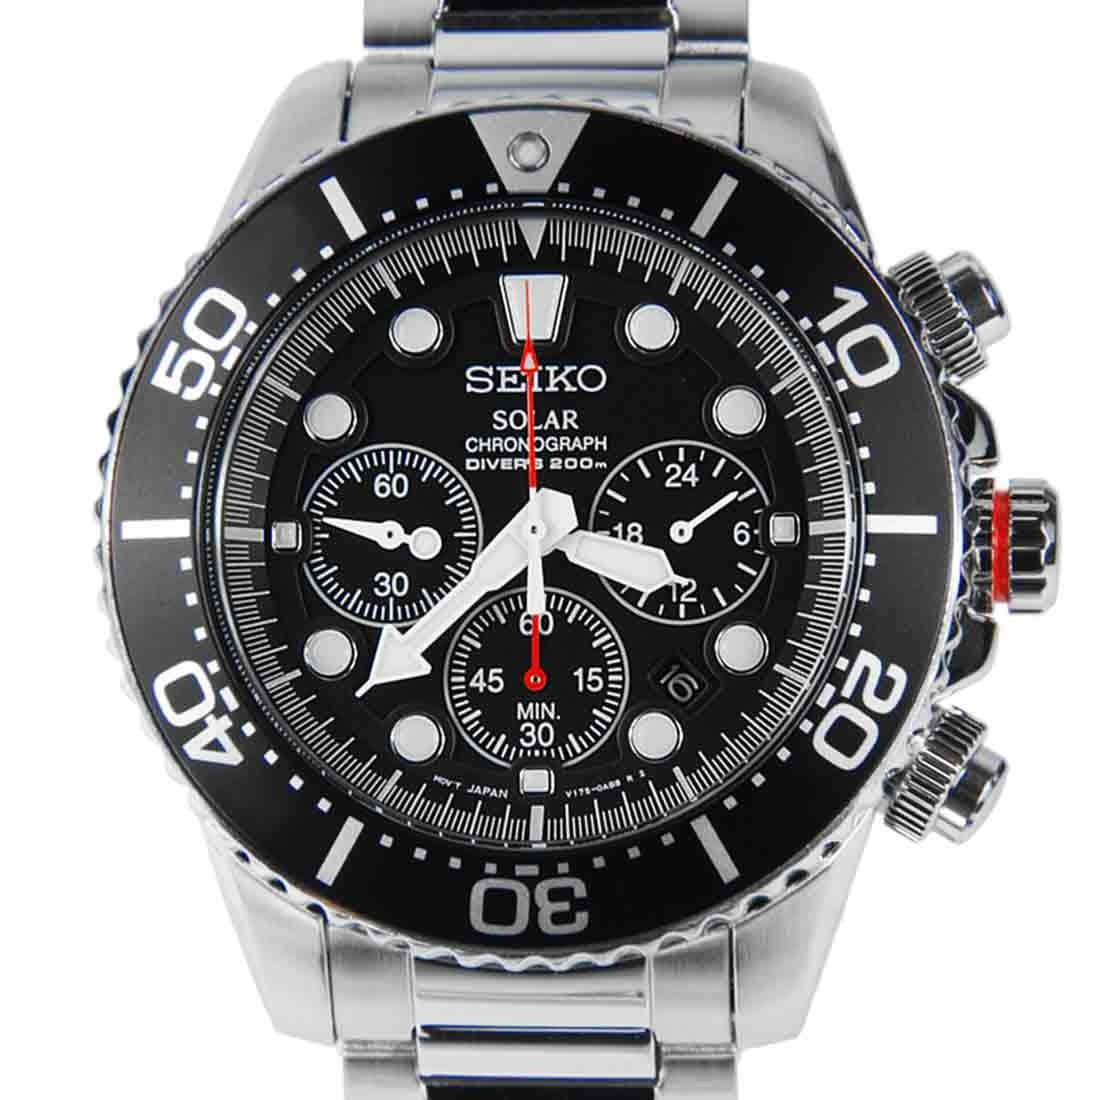 Seiko Solar Chronograph Diver Watch SSC015P1 SSC015 in